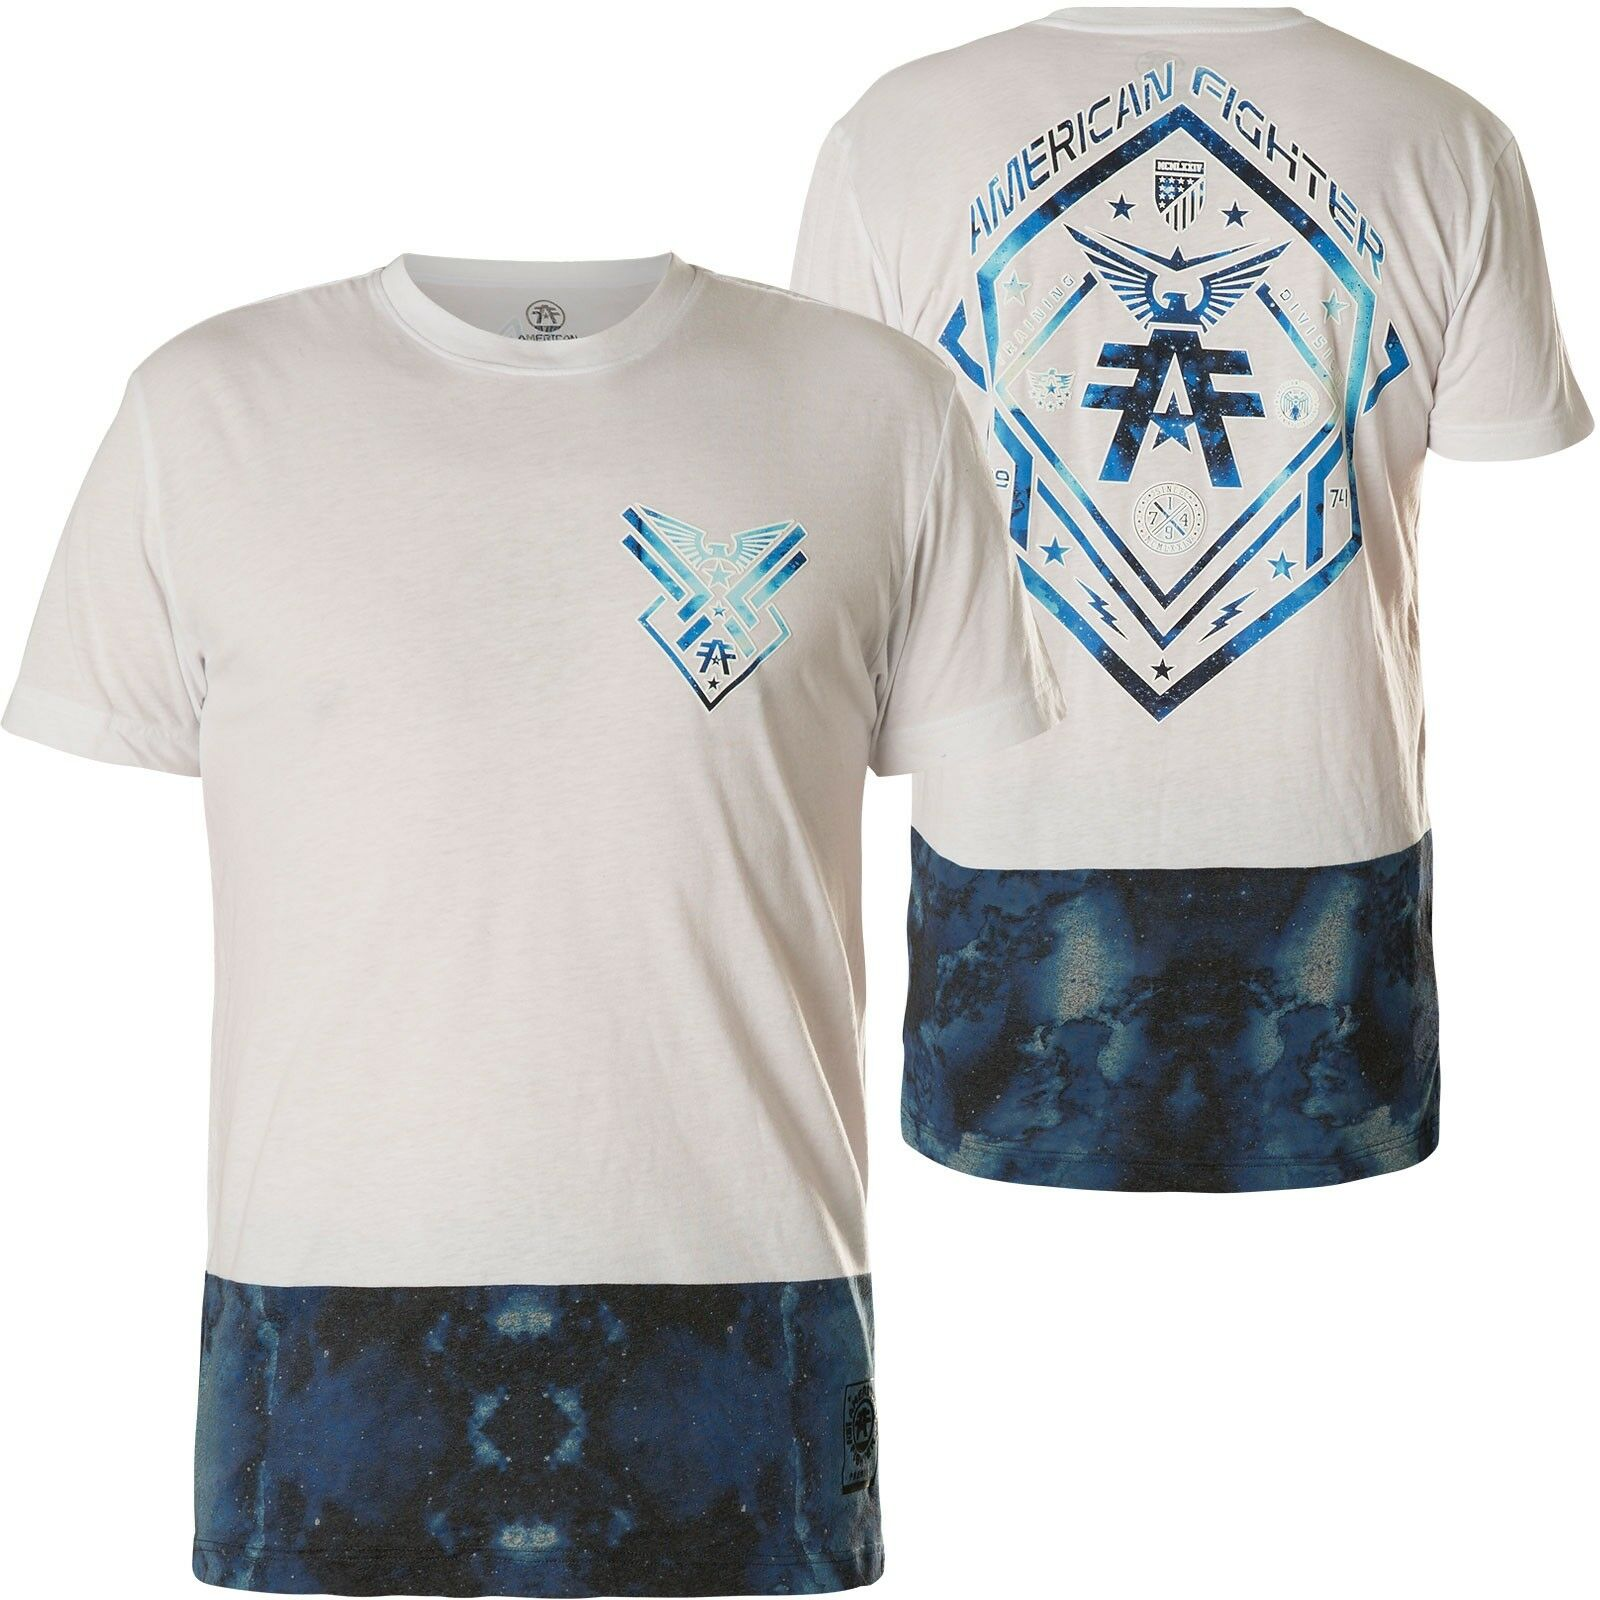 American Fighter by Affliction T-Shirt Yardley White bluee